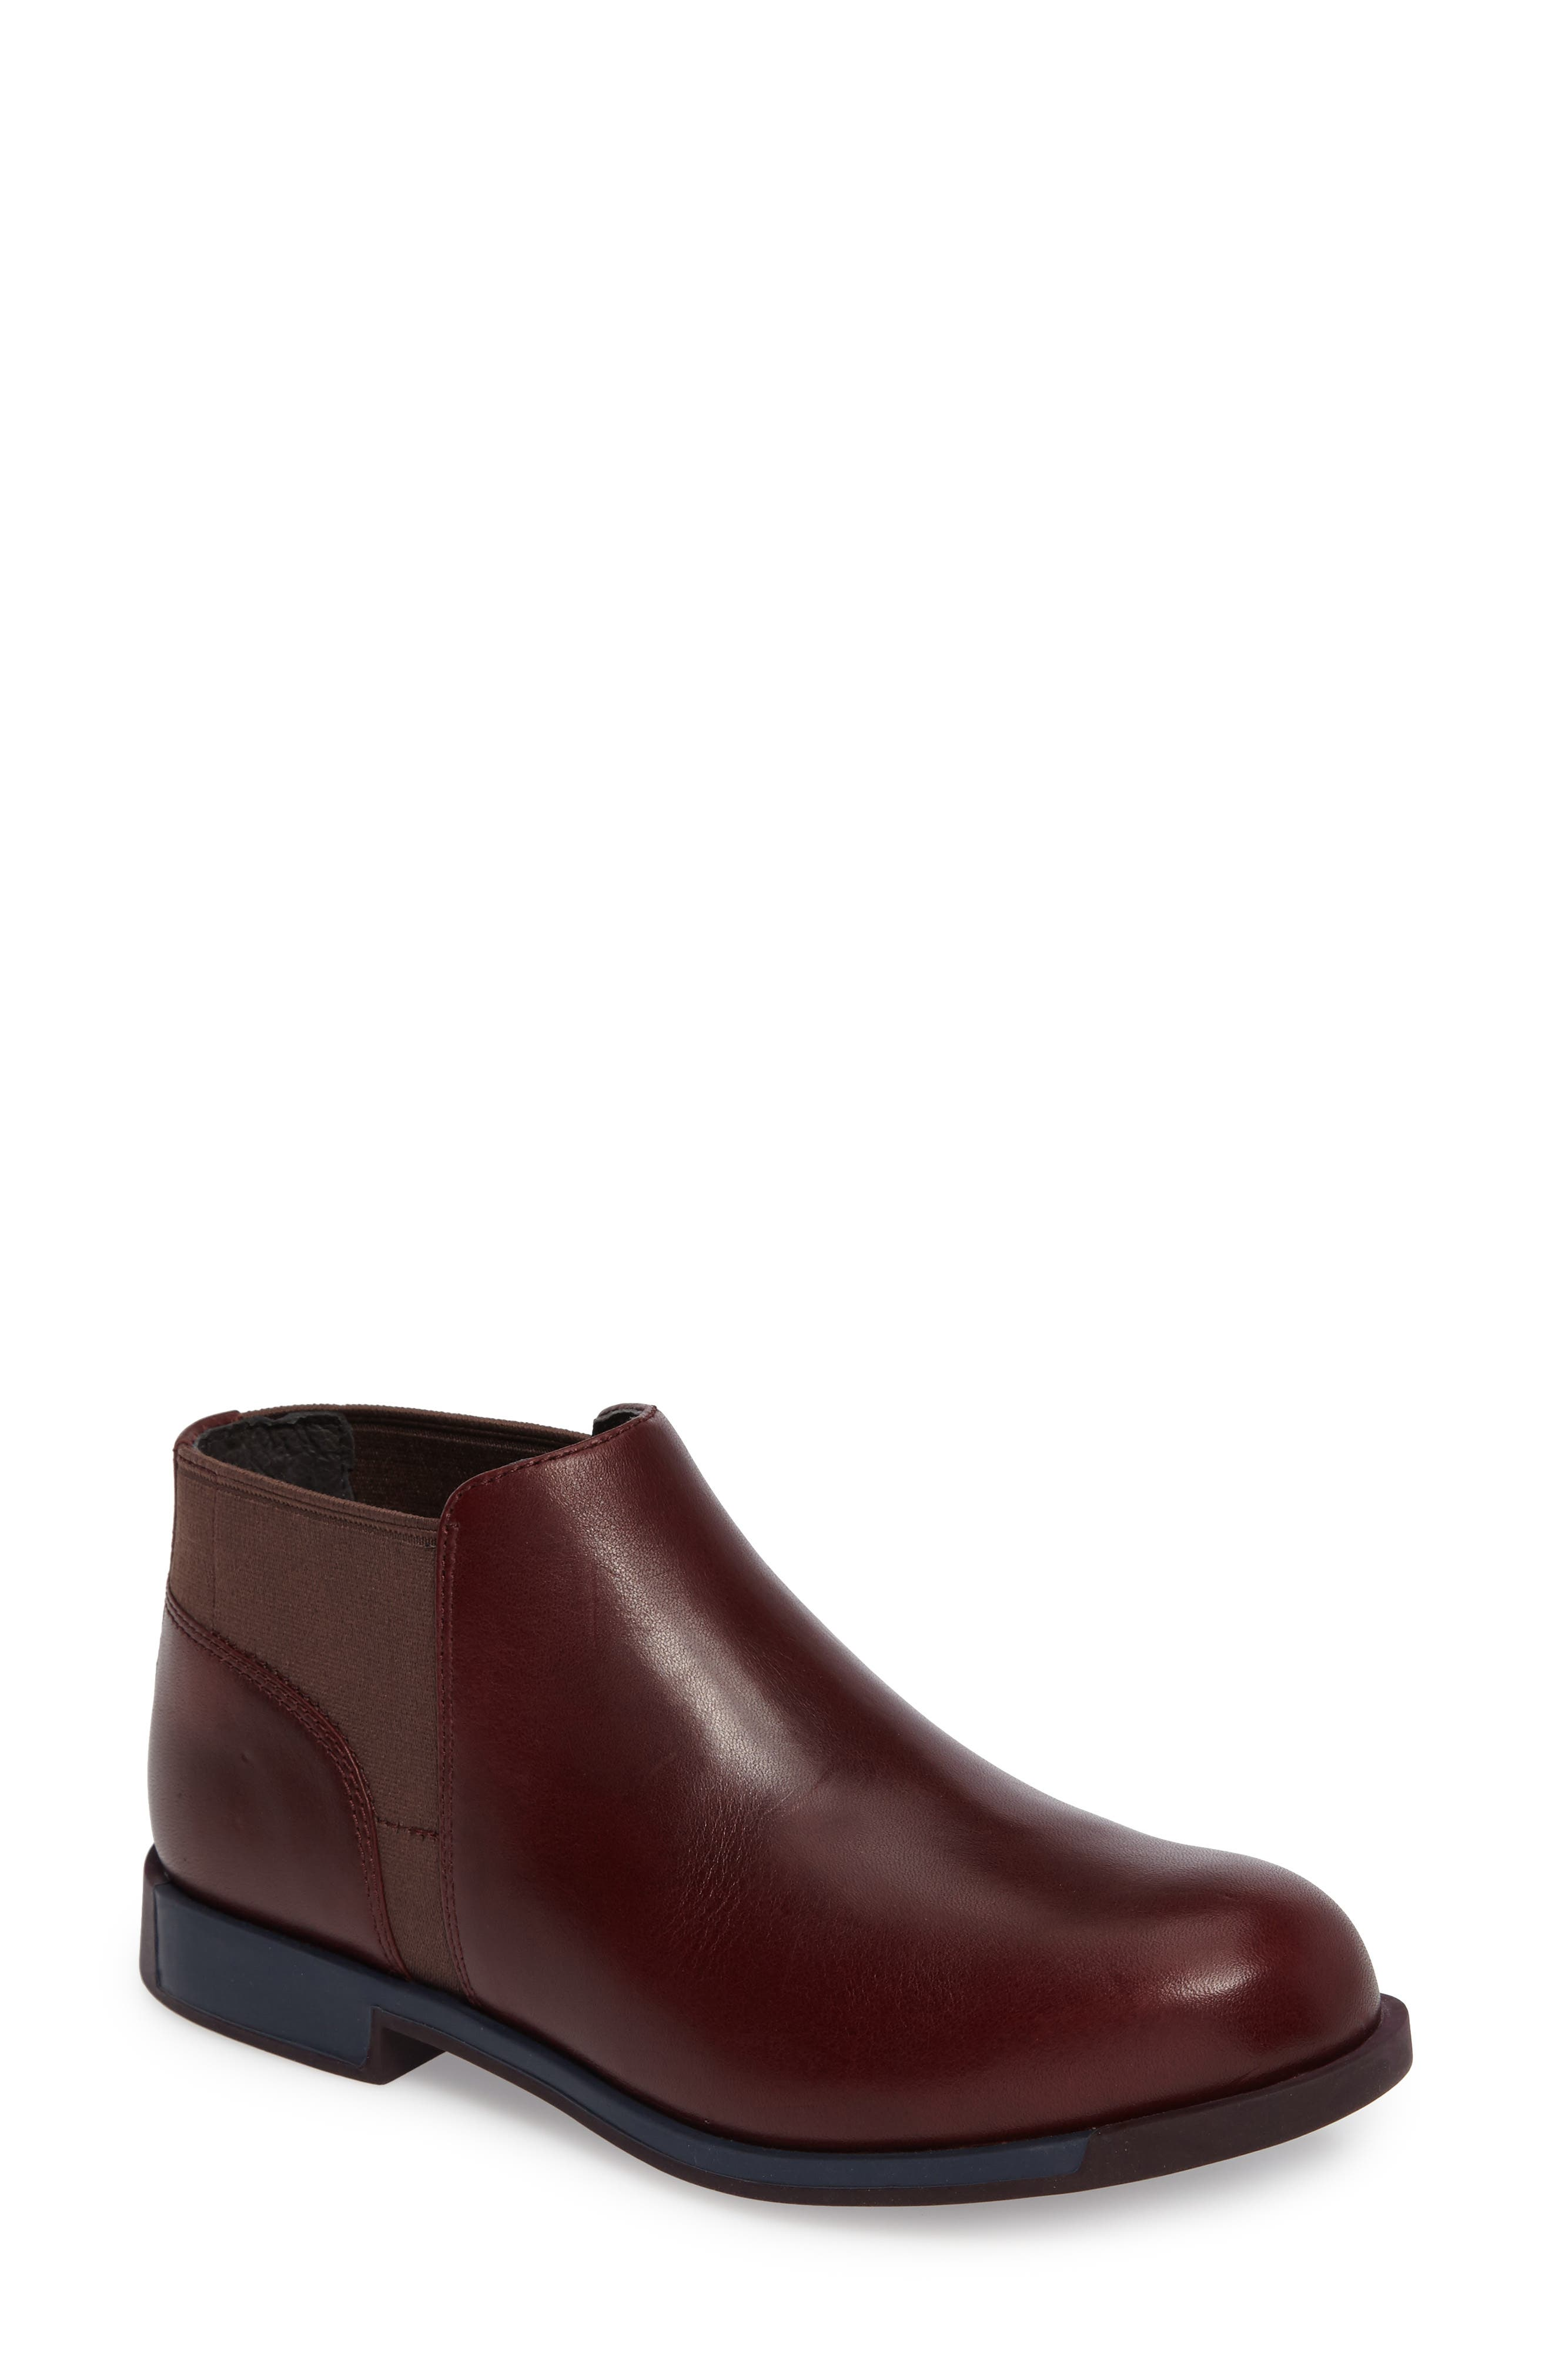 CAMPER,                             Bowie Chelsea Boot,                             Main thumbnail 1, color,                             600